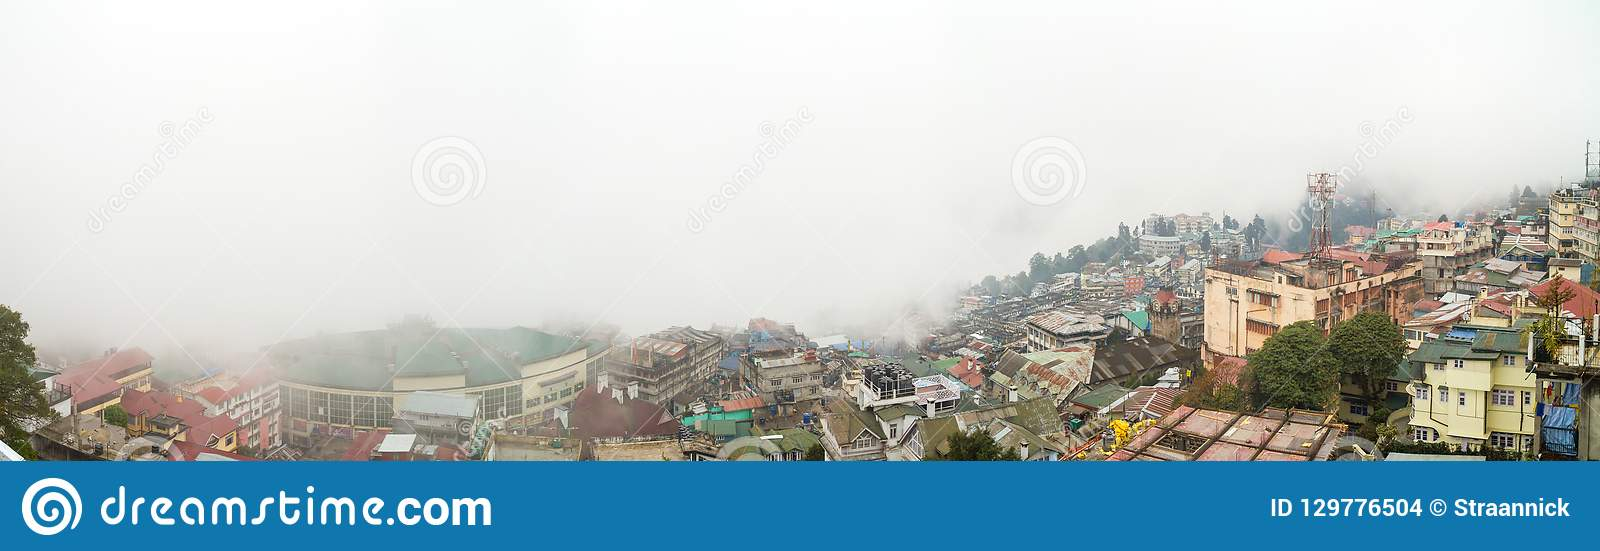 Panorama of Darjeeling city in East Bengal, India, and the surrounding mountains covered with thick fog